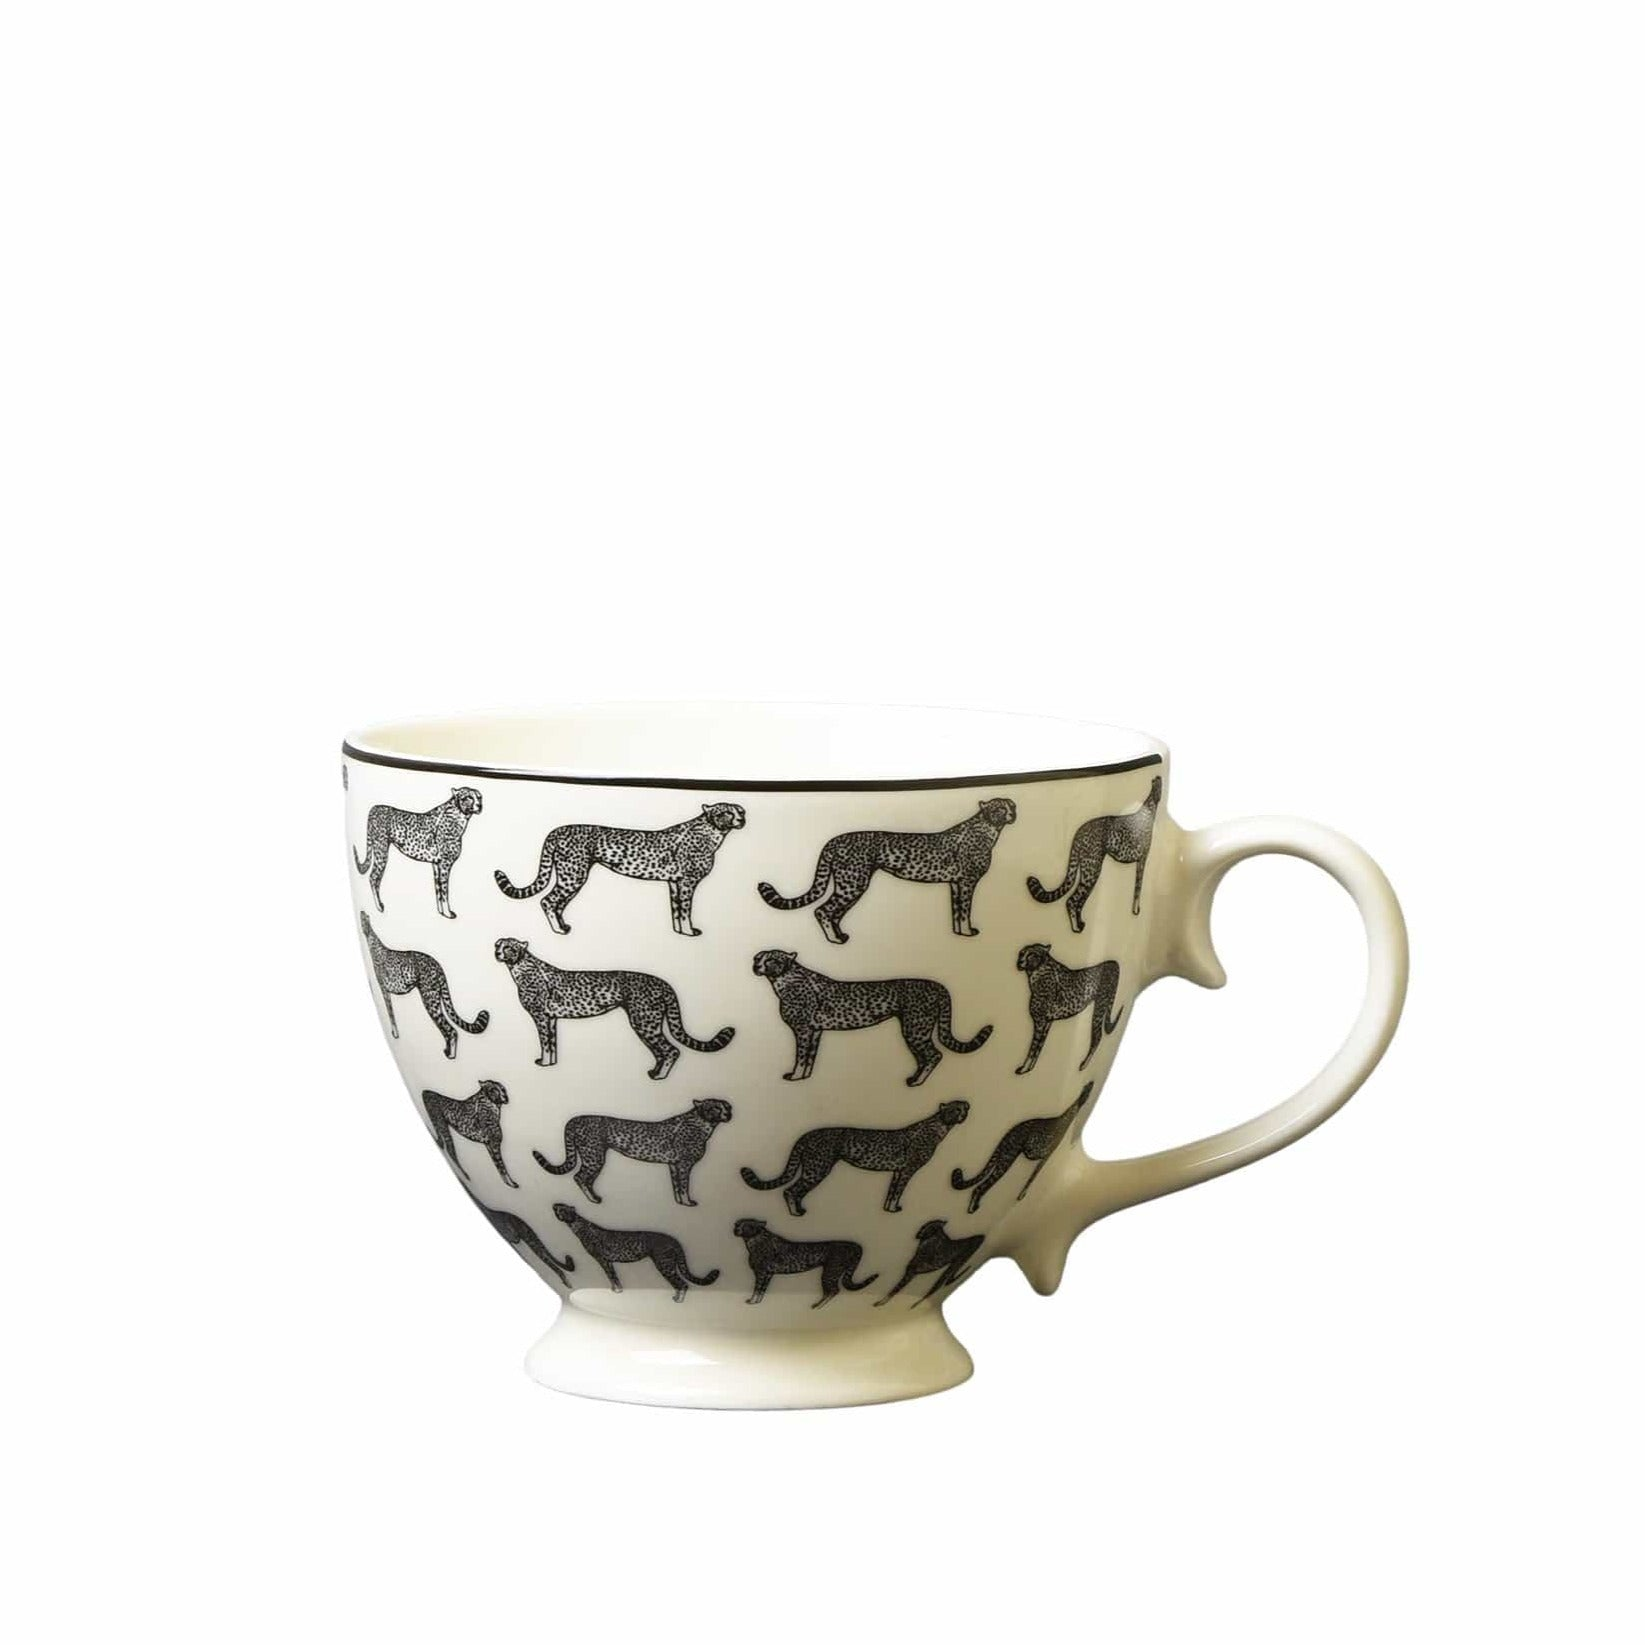 Candlelight Home Mug Animal Luxe Footed Mug All Over Leopard Print Black 6PK